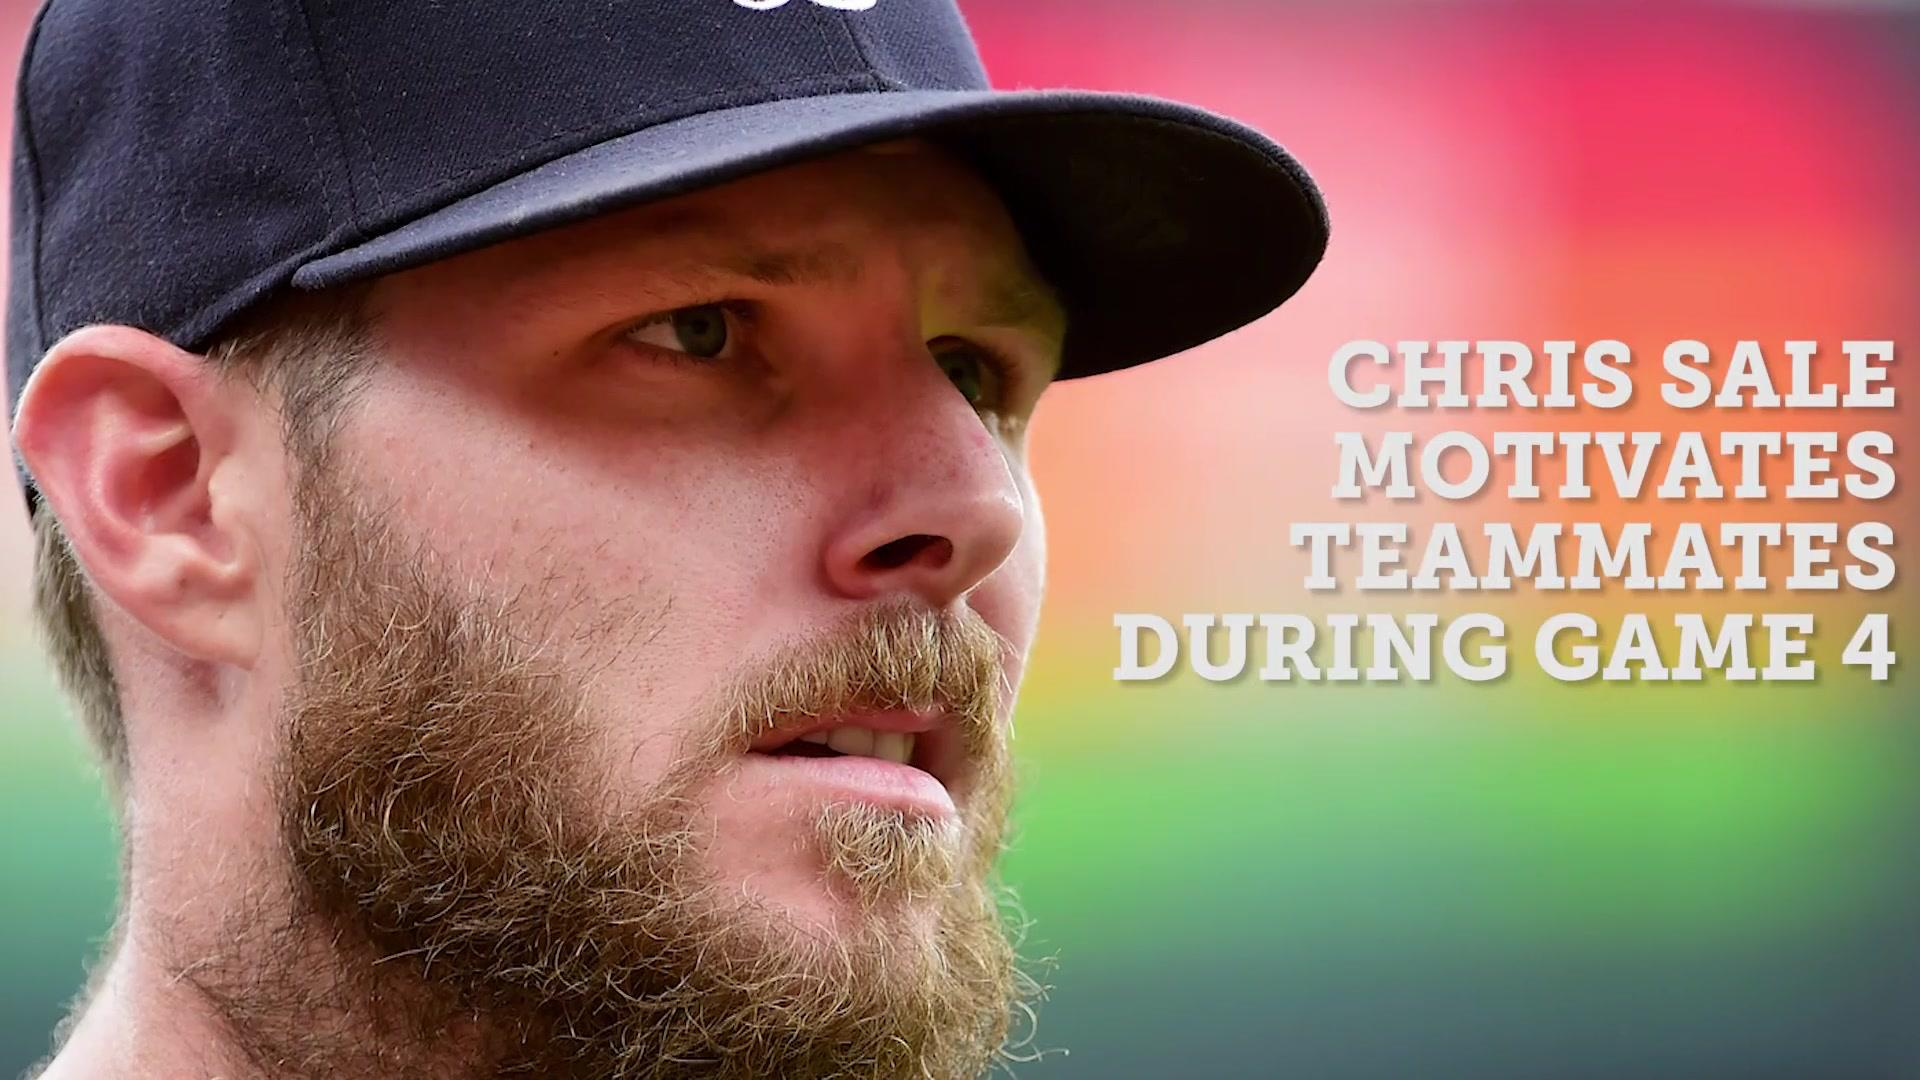 Chris Sale fired up his teammates during Game 4